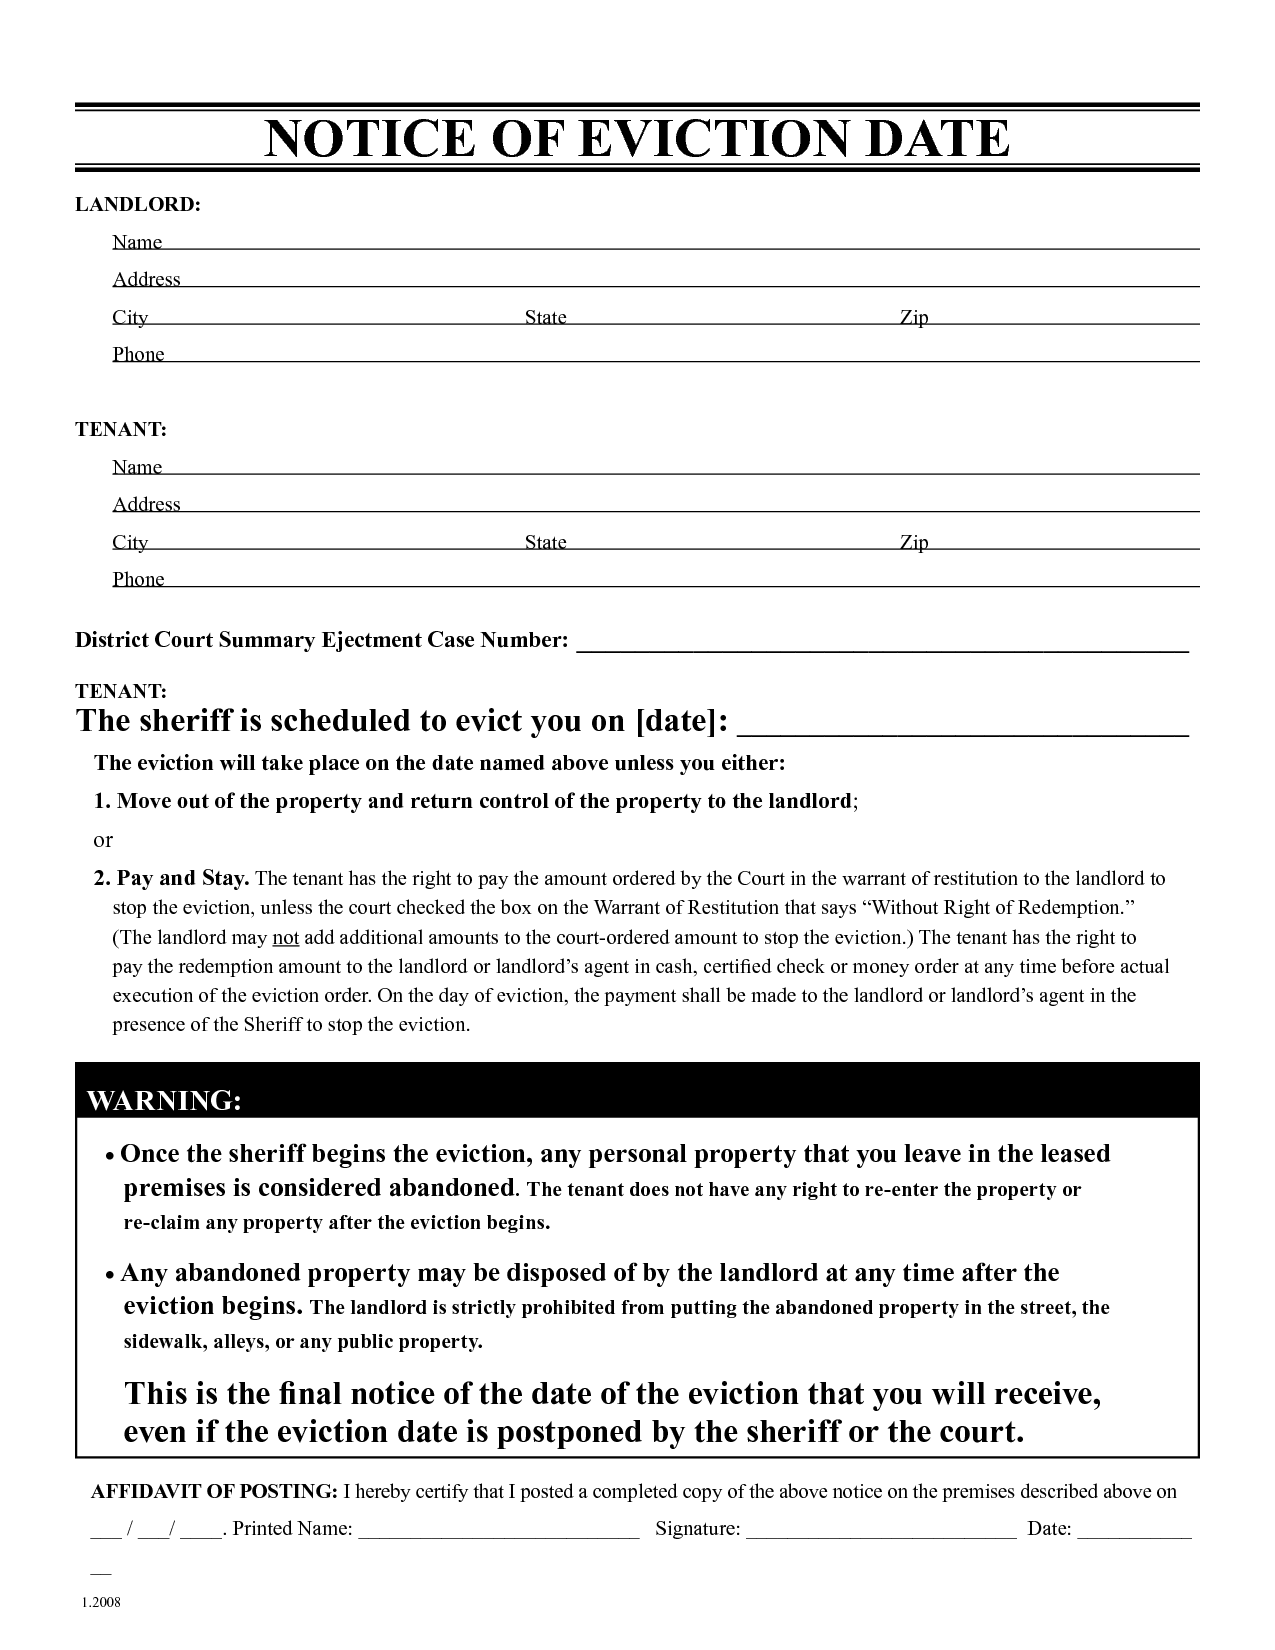 Free Eviction Notice forms